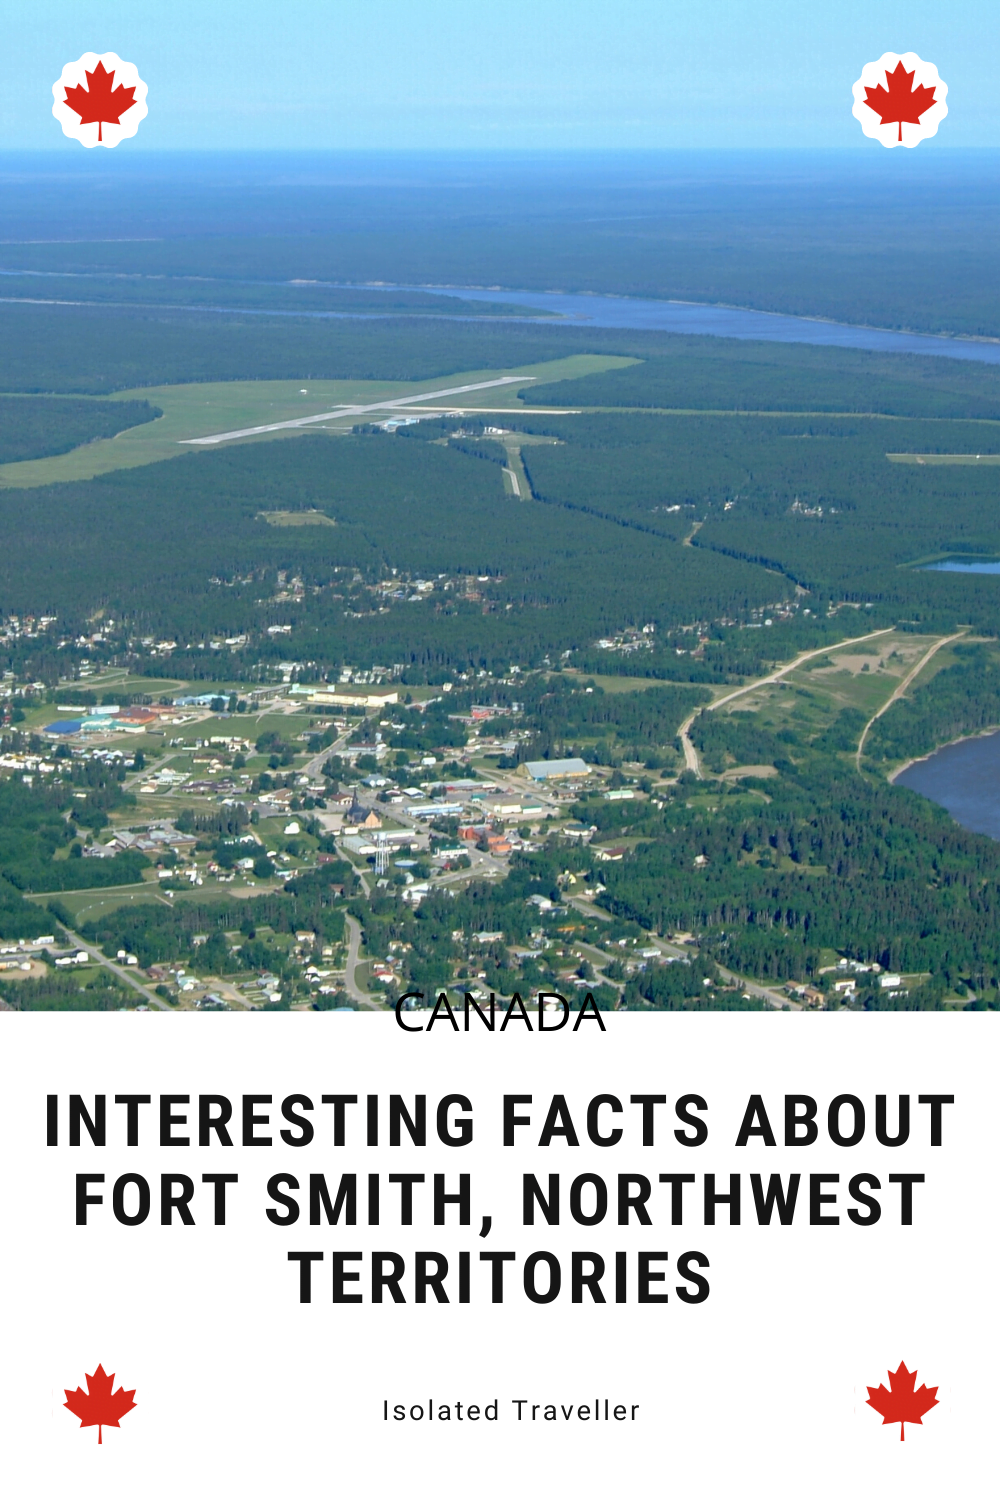 Facts About Fort Smith, Northwest Territories